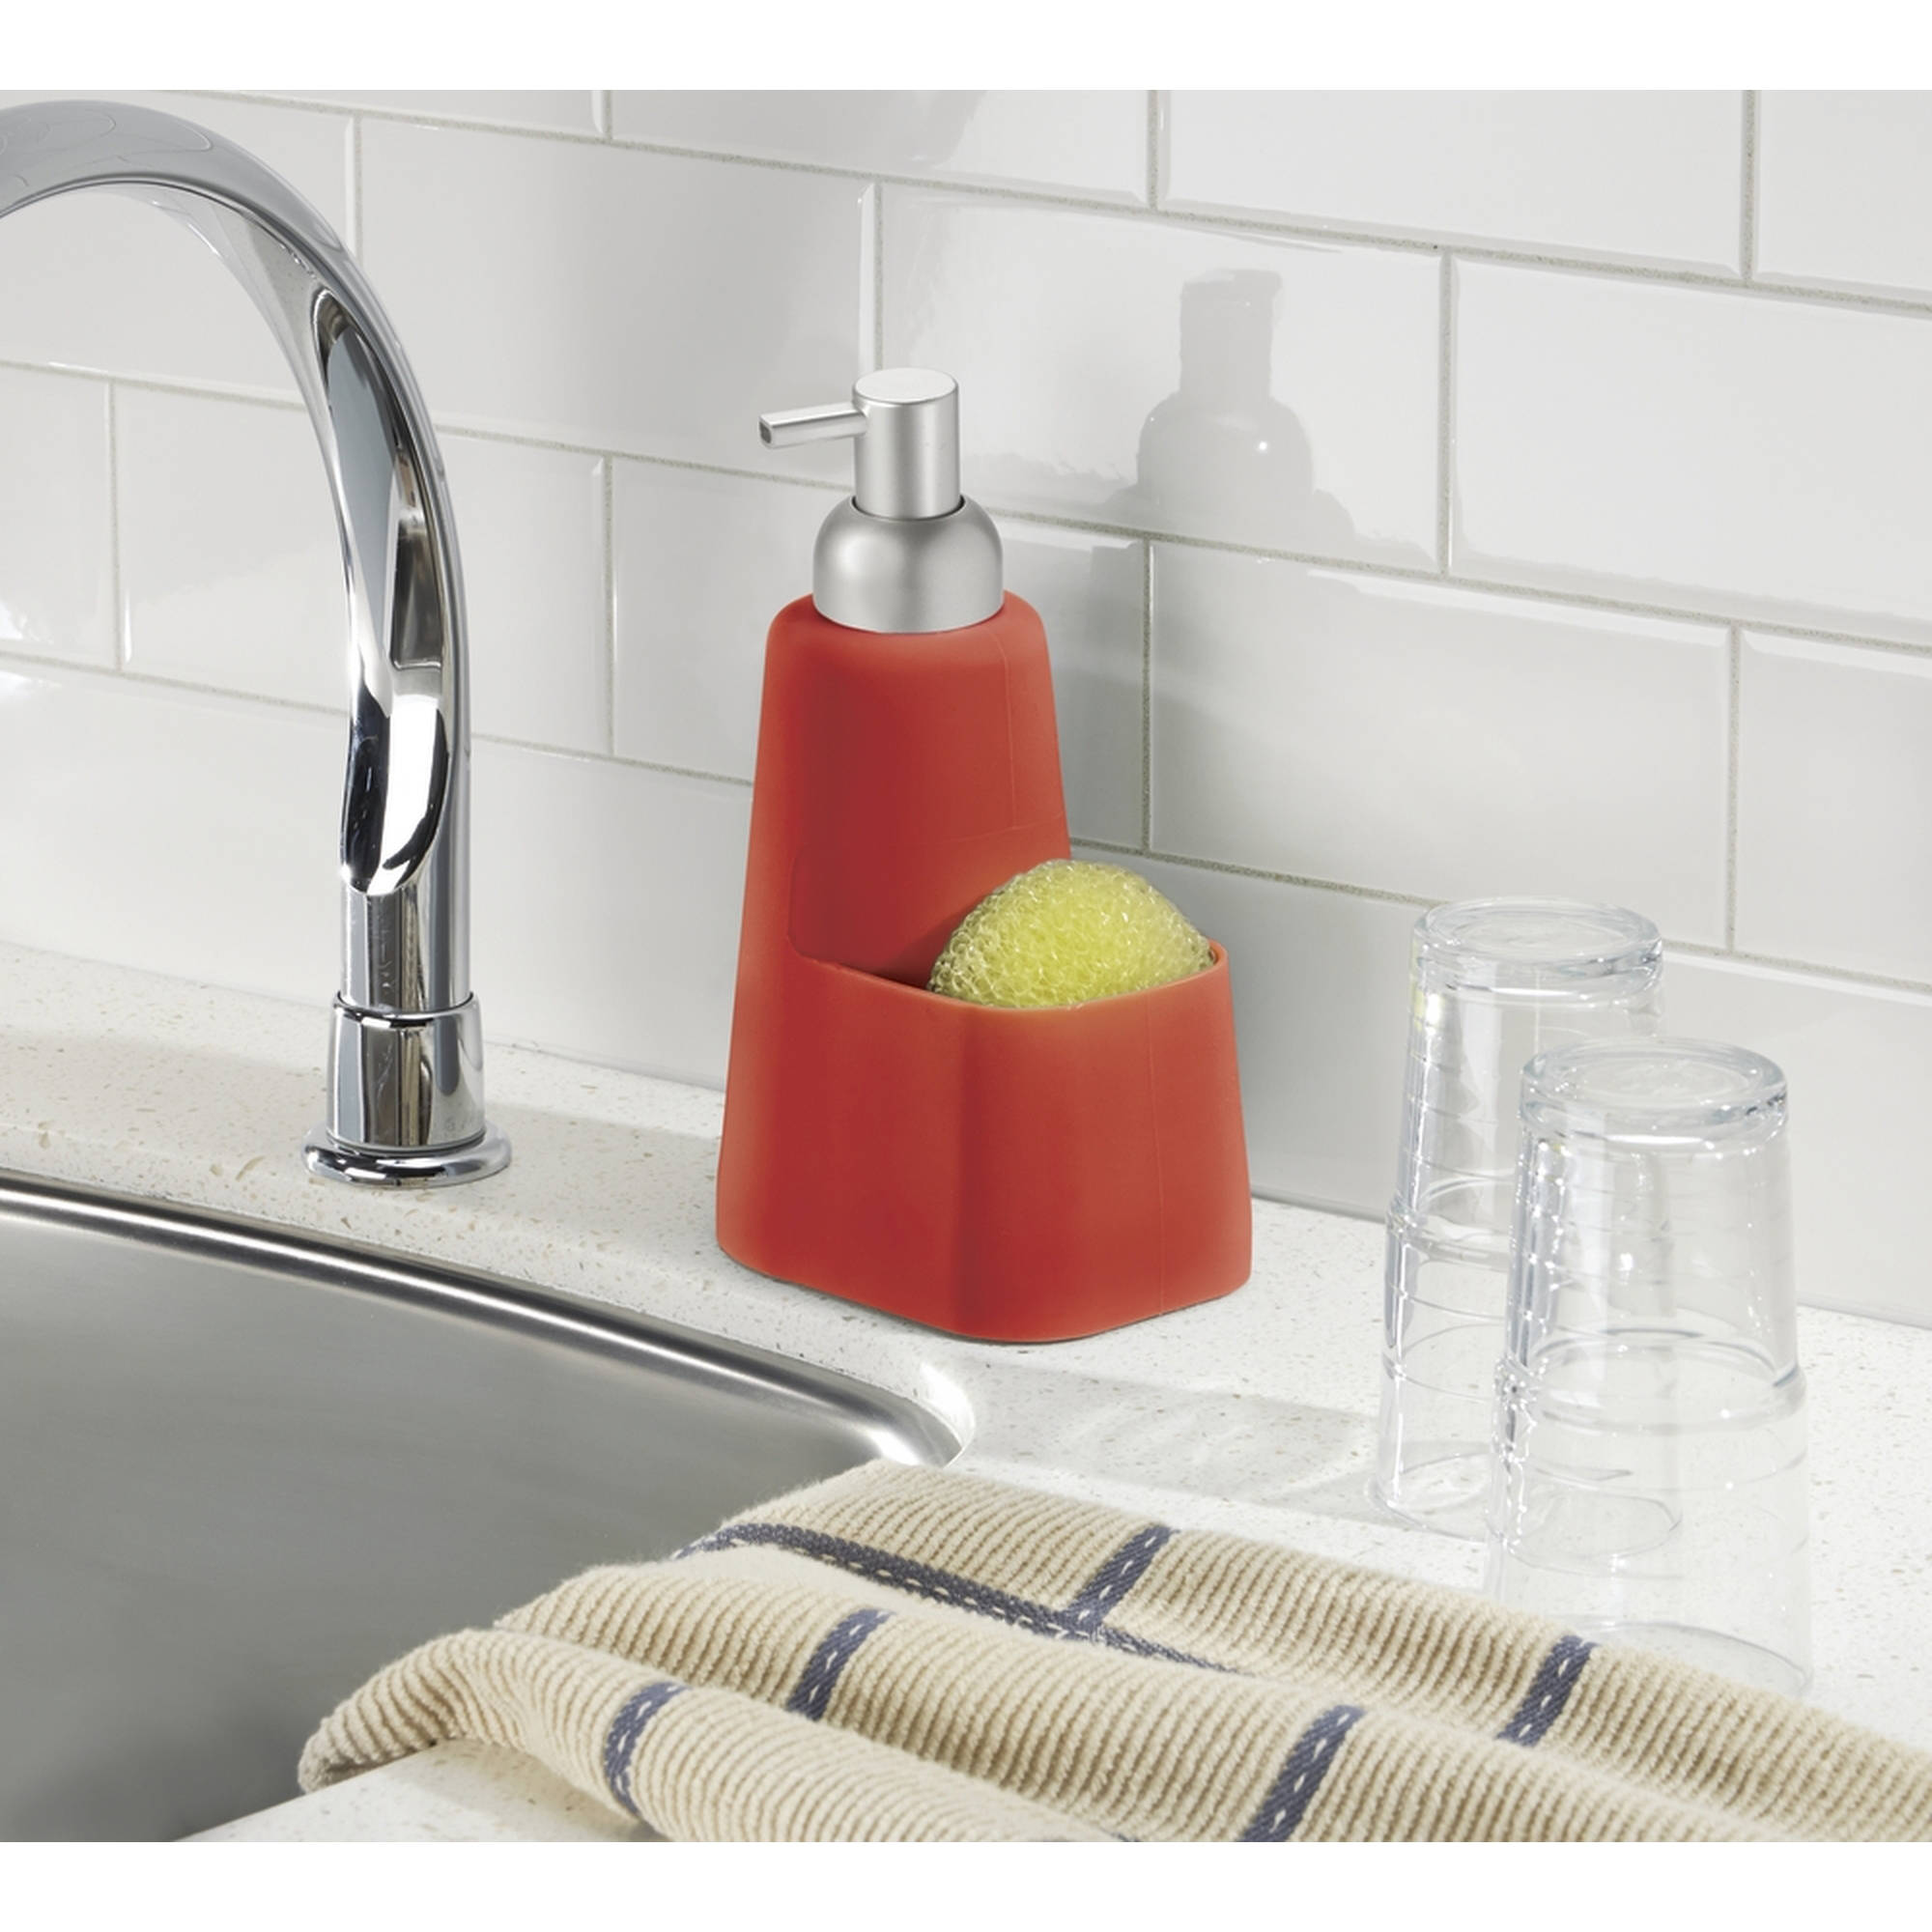 InterDesign Lineo Kitchen Soap Dispenser Pump and Sponge Caddy Organizer, Red/Brushed